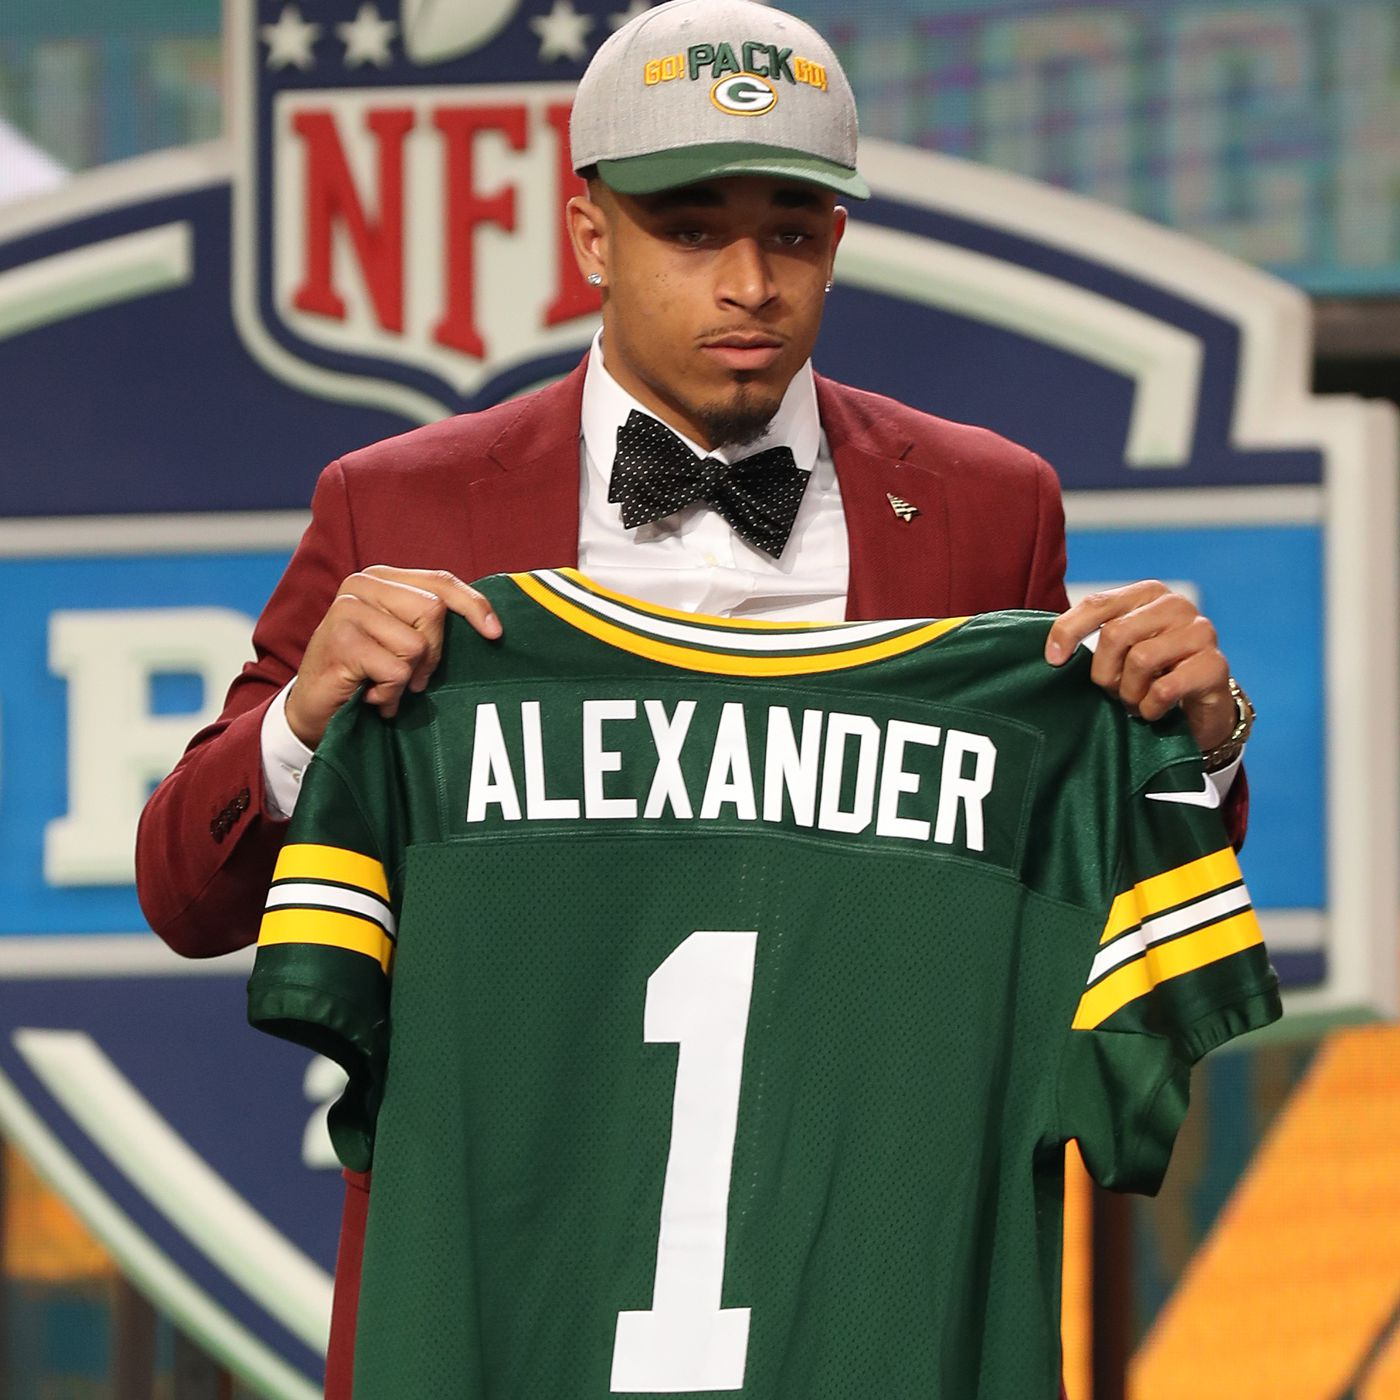 Packers assign jersey numbers to players in 2018 draft class - Acme Packing  Company bc279c0a8